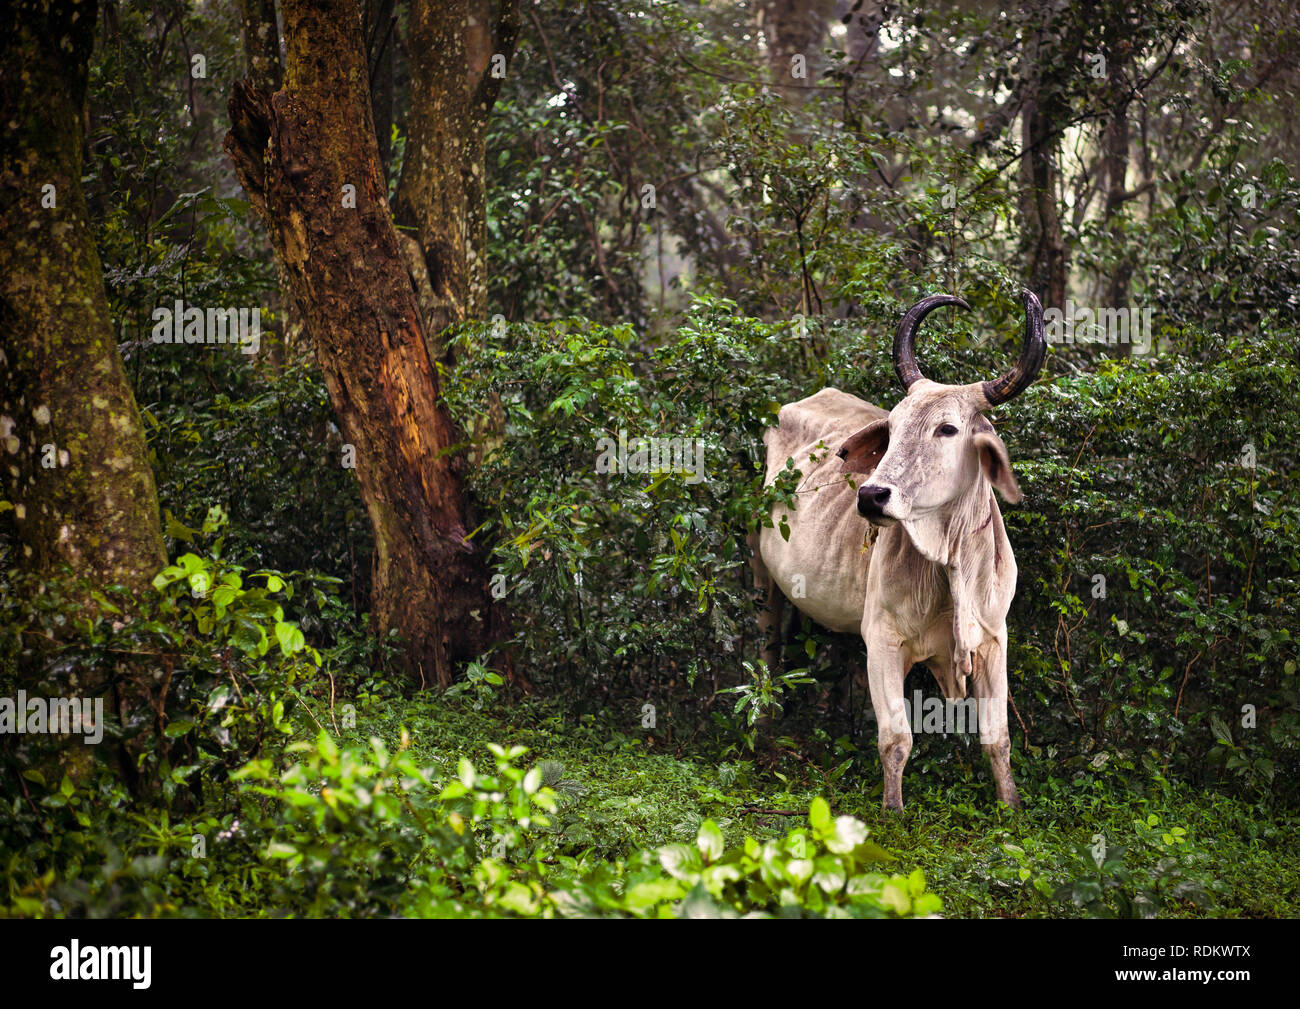 An Nguni cow emerges from the sacred Ngoye Forest on a misty day in KwaZulu-Natal, South Africa. - Stock Image